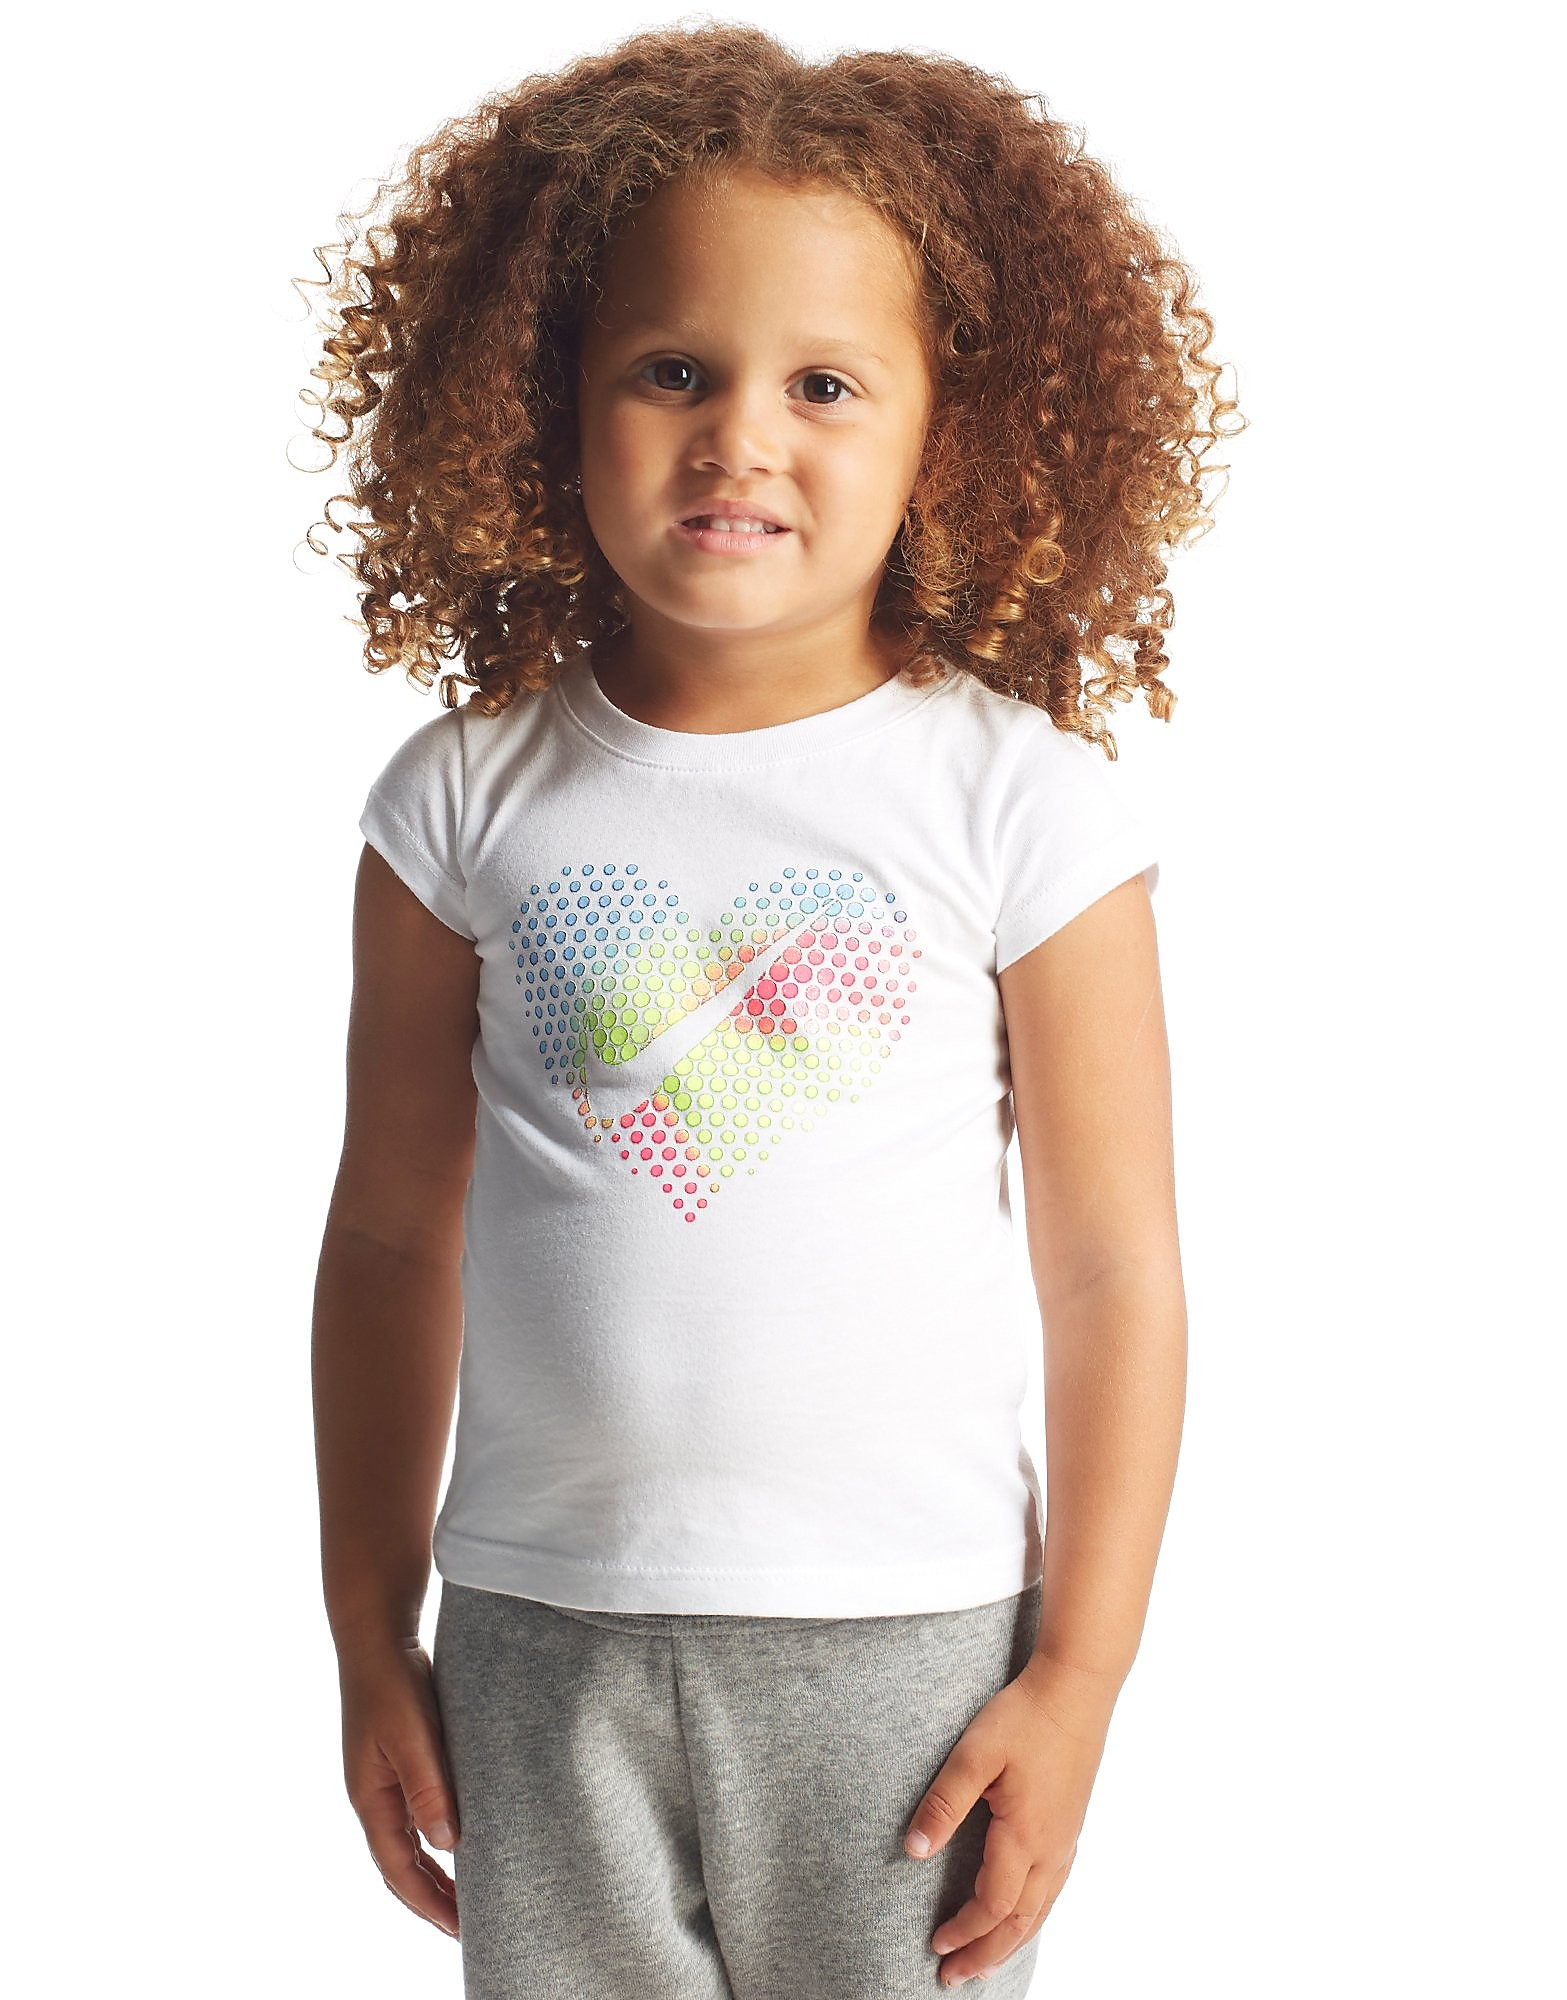 Nike Girls' Swoosh T-Shirt Infant